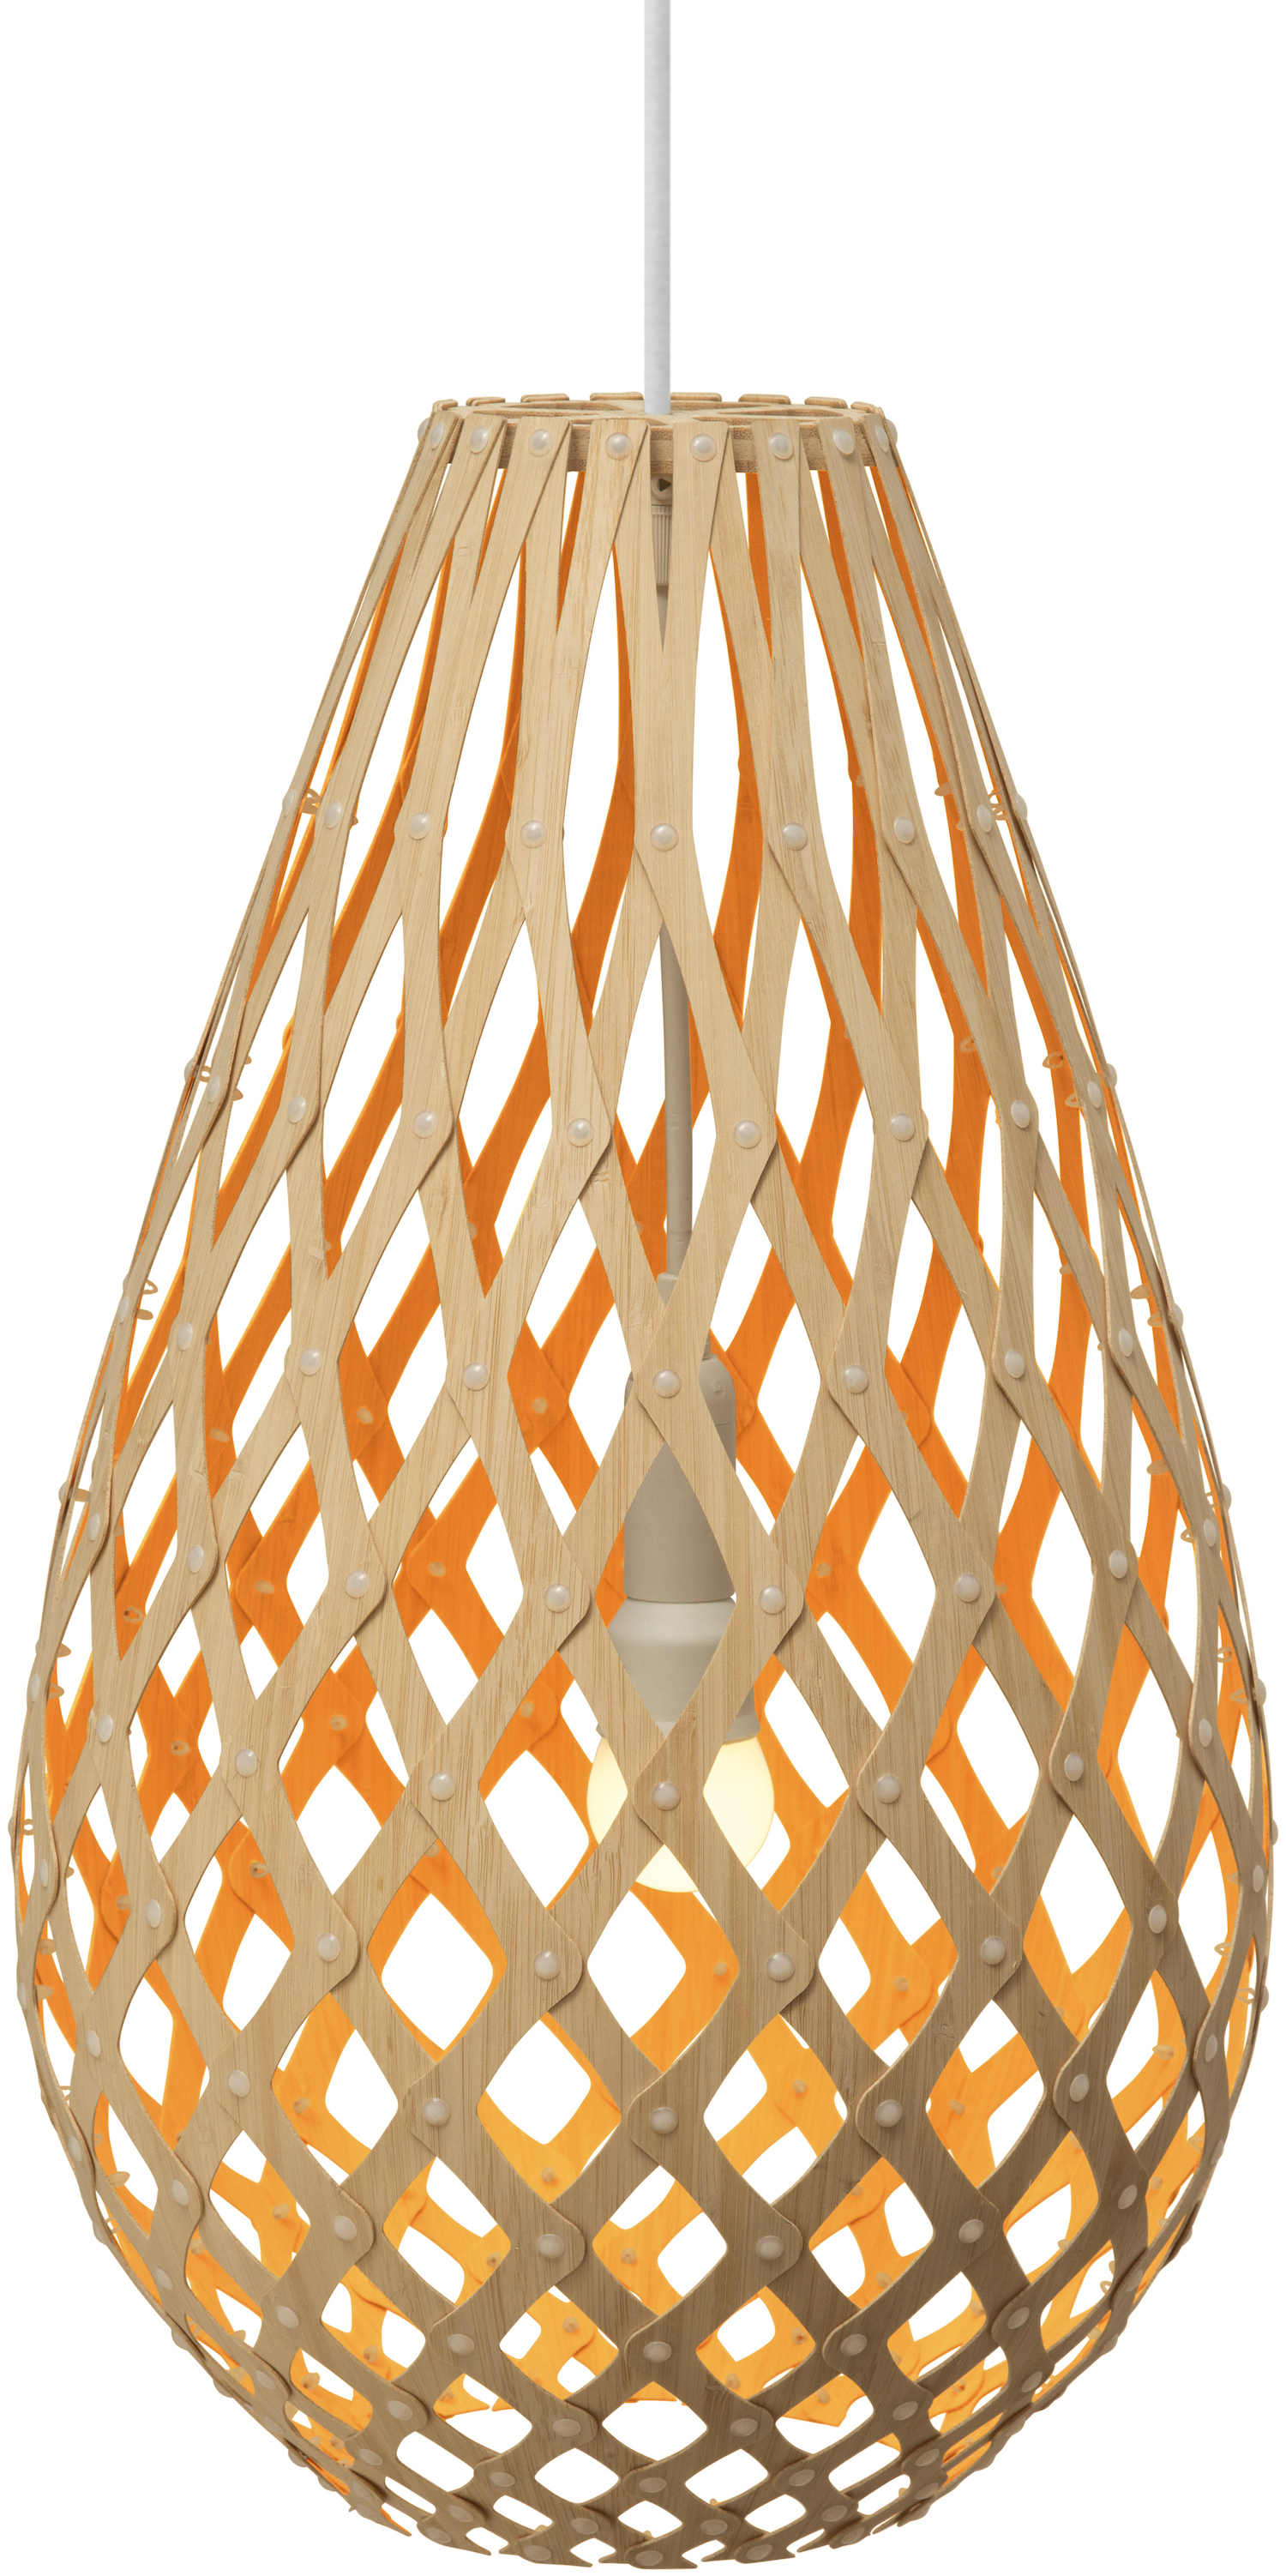 David trubridge koura pendant for Scandic design